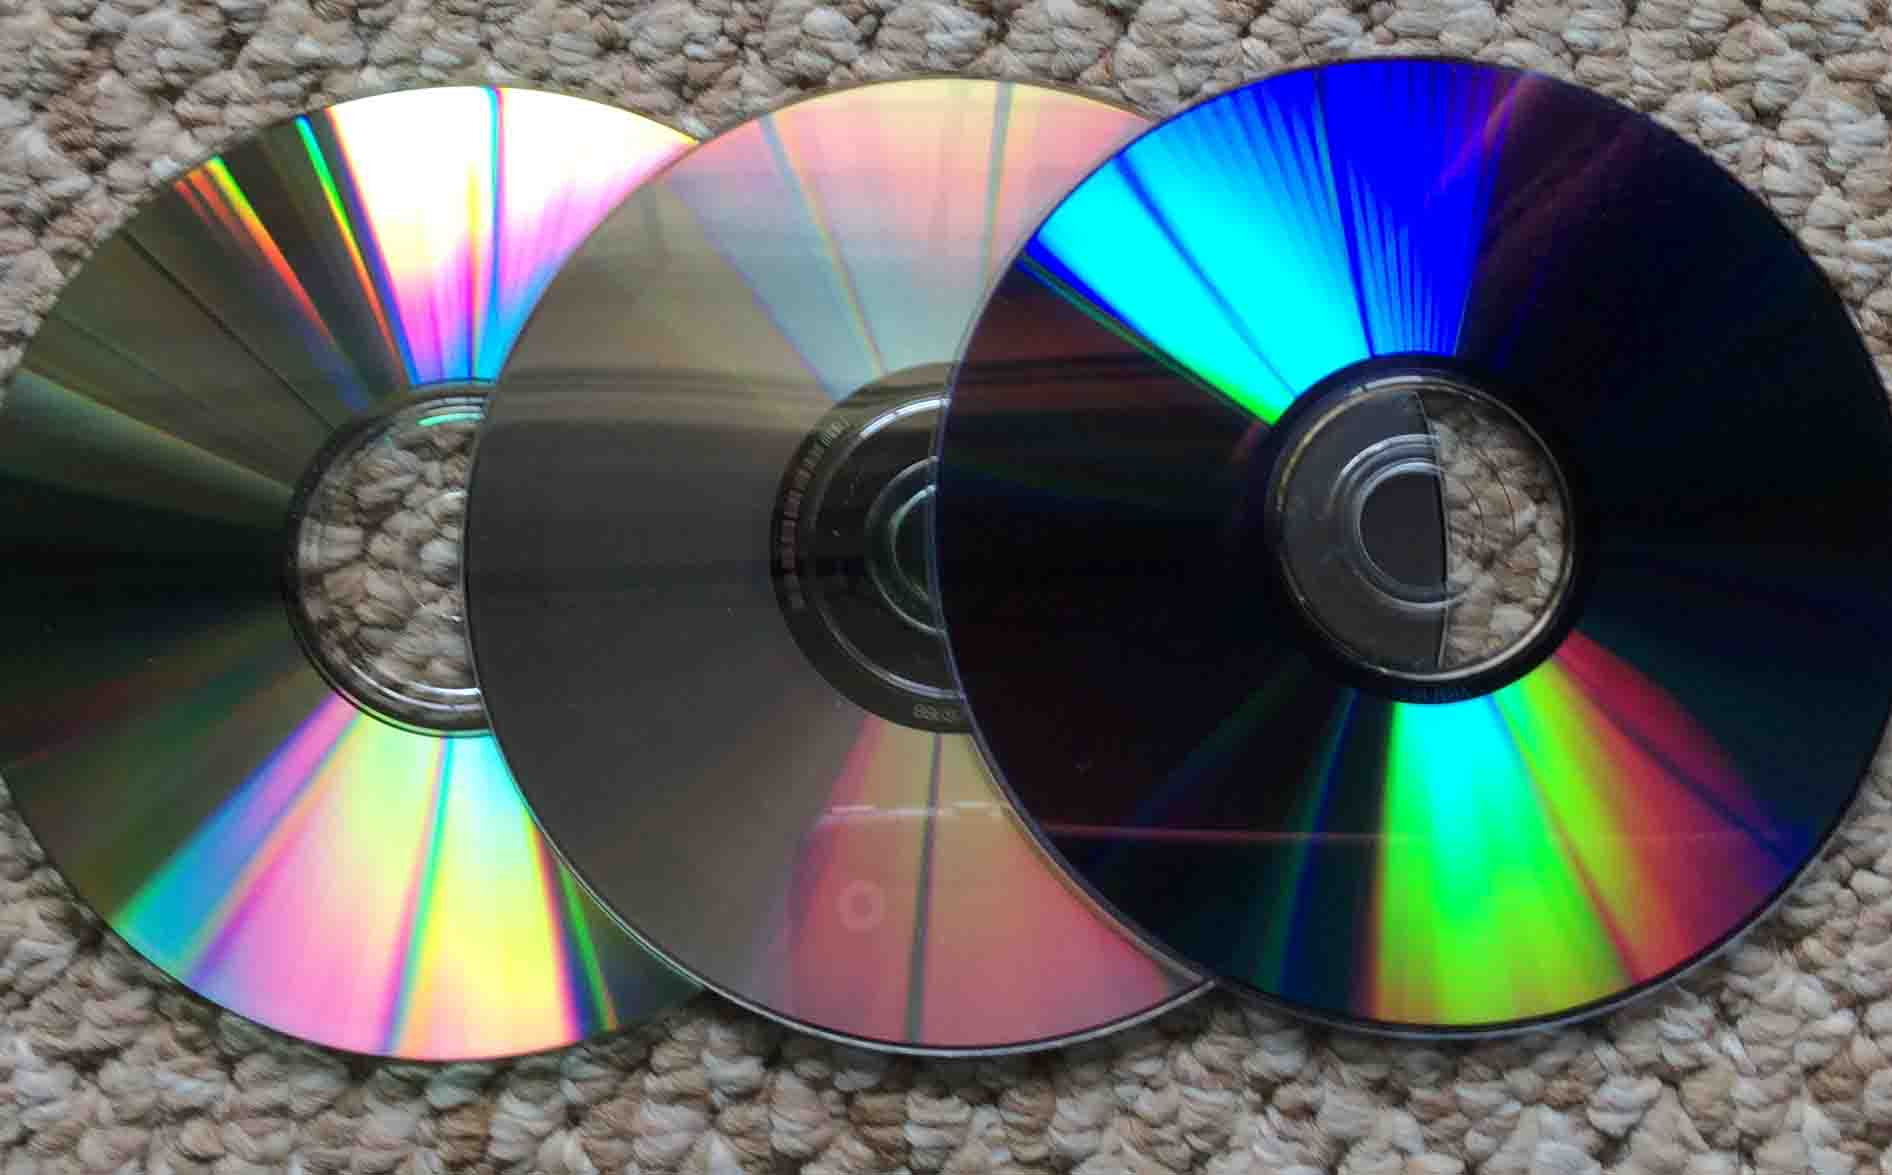 How To Fix A Scratched Ps3 Disc Cd Dvd And Blu Ray Repair Your Plasystation 3 Laser Picture Of Typical Game Discs